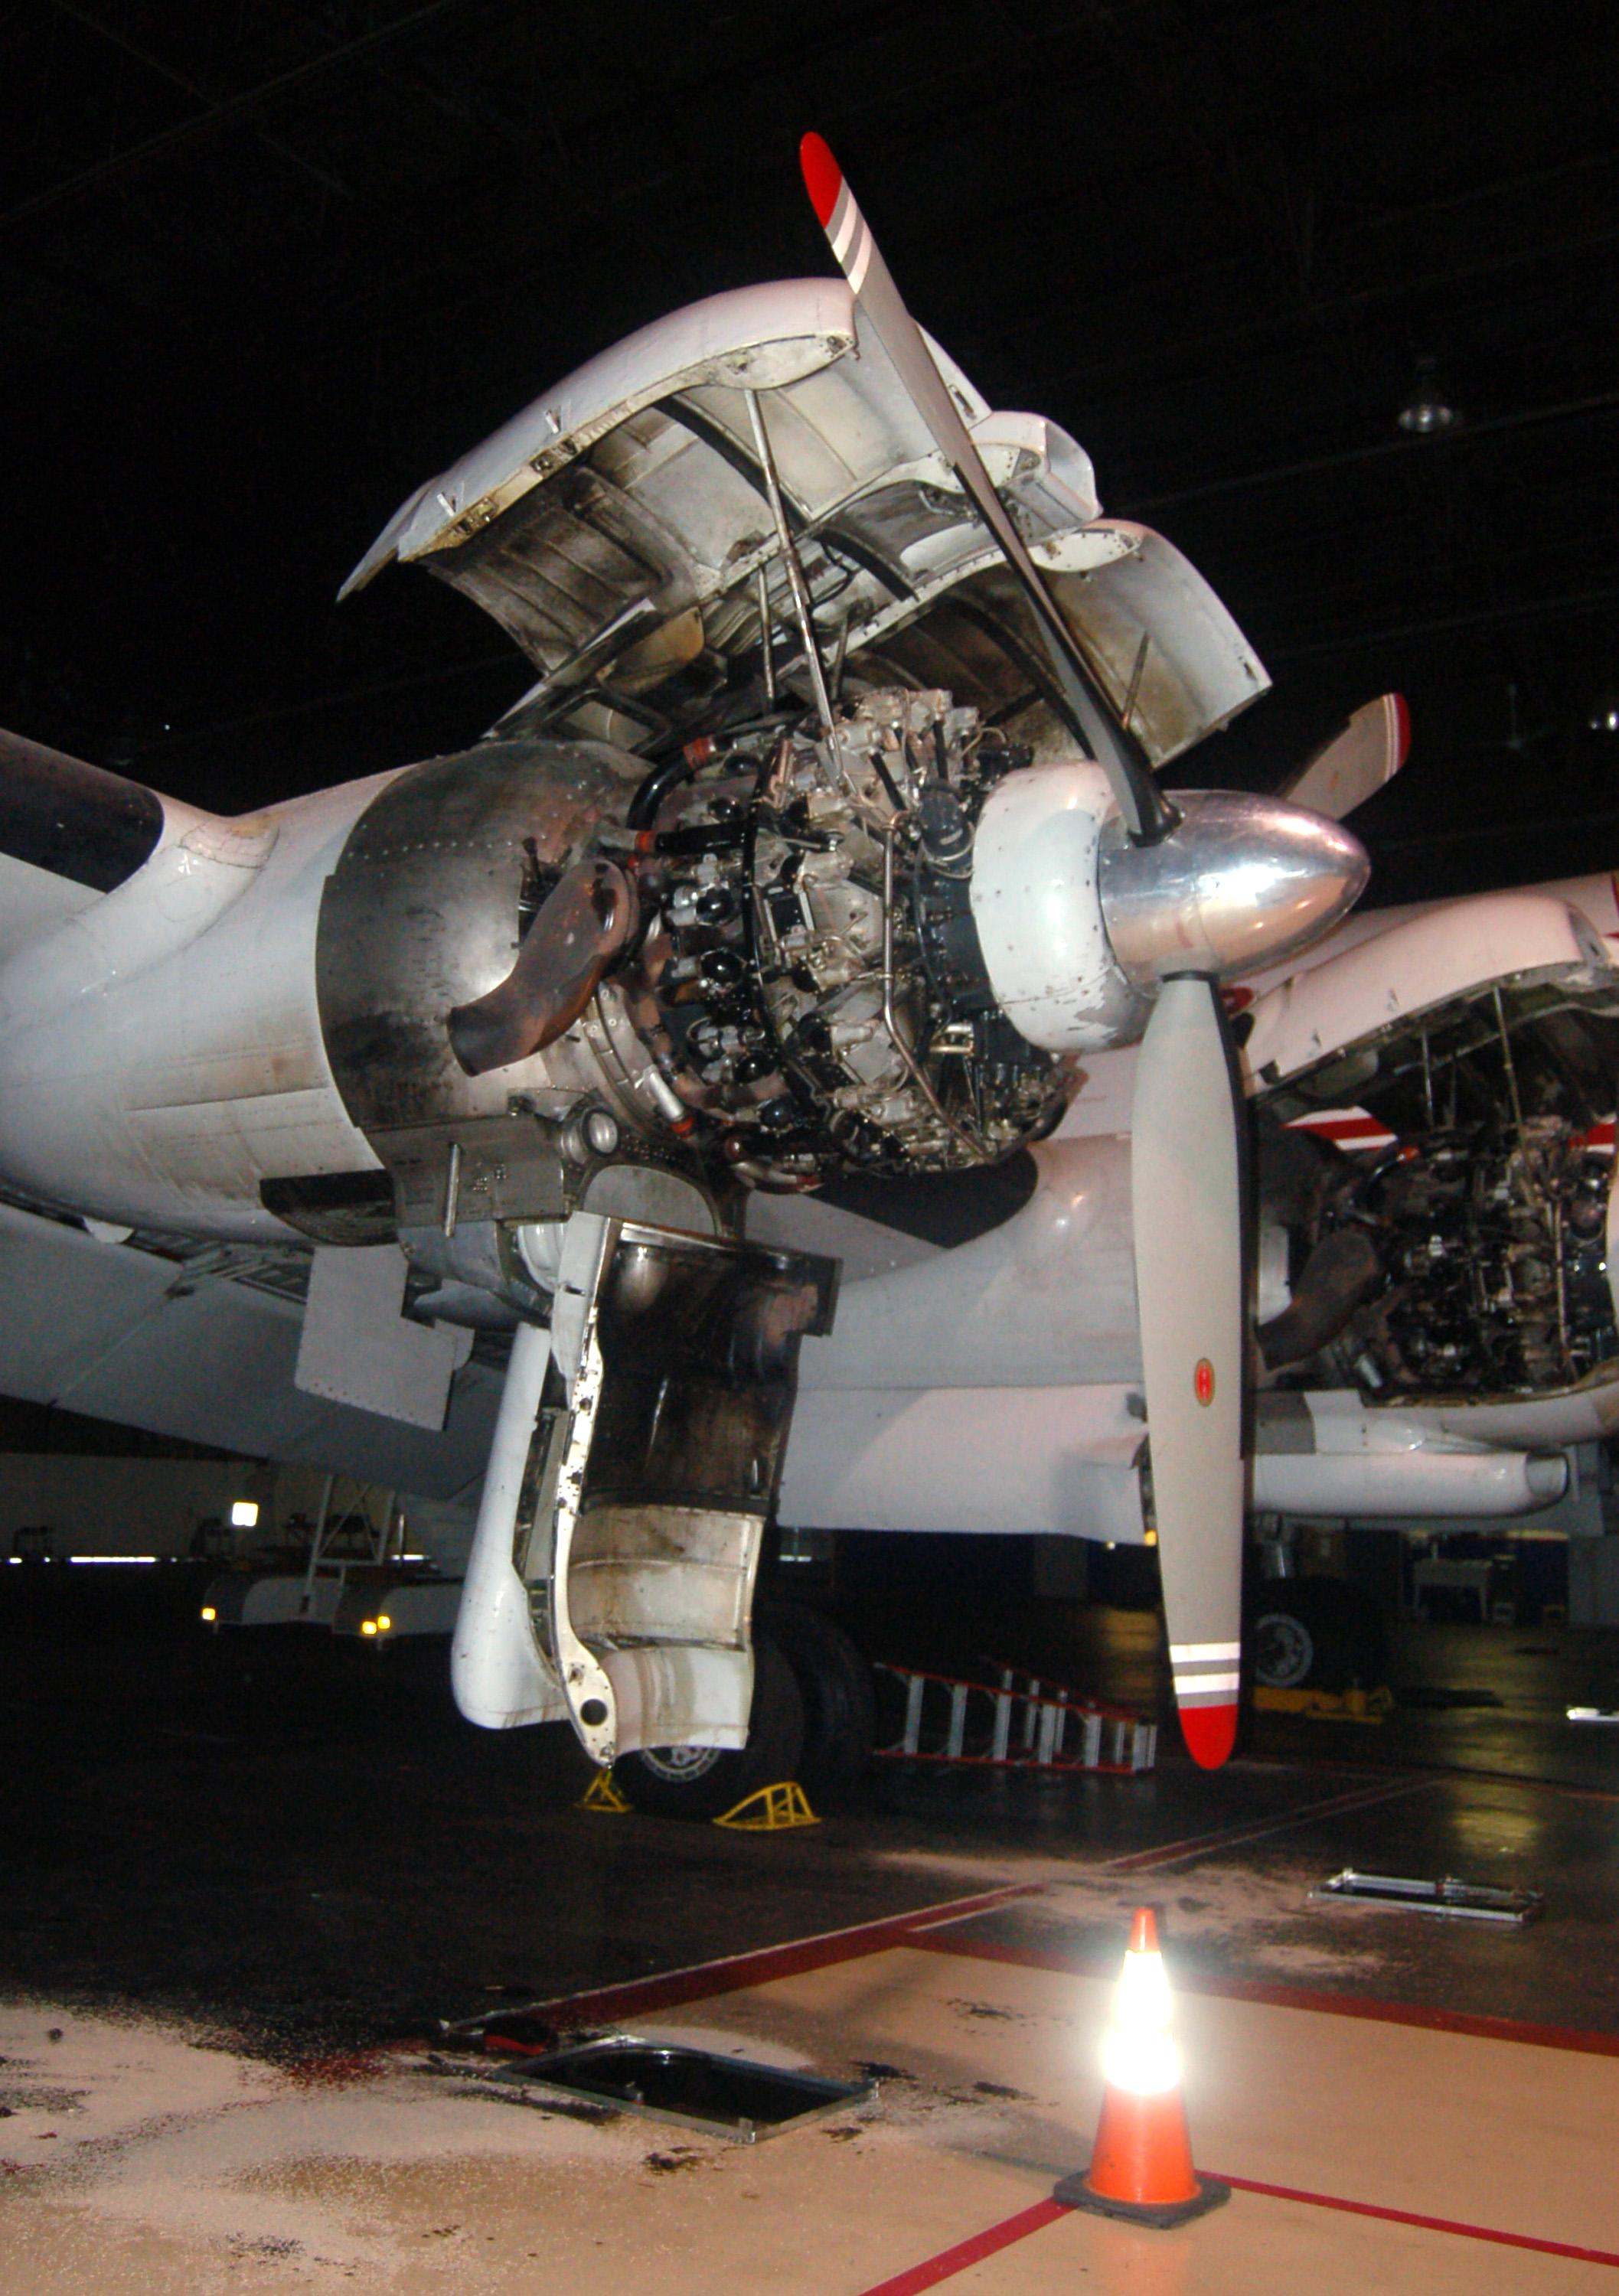 This 2012 photo provided by the National Airline History Museum shows its Lockheed Constellation, or Connie, as the propeller-driven aircraft was known, during engine inspection in Kansas City, Mo. The museum is trying to raise $3.2 million to restore it, the only one left in the U.S. that's airworthy, and recreate millionaire aviator Howard Hughes' record-setting cross-country flight in the plane that transformed commercial air travel. (AP Photo/National Airline History Museum)